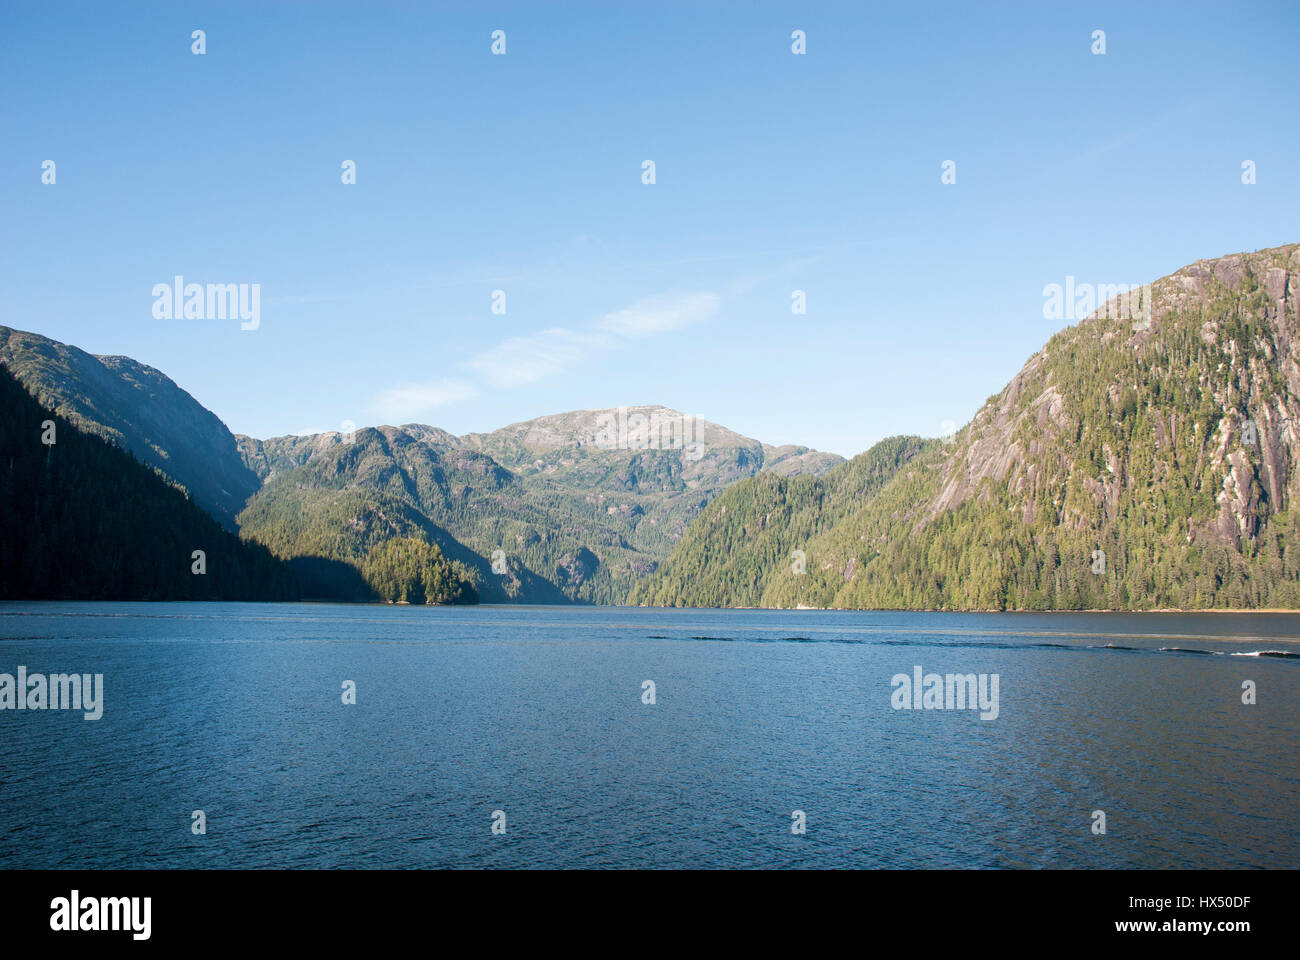 Misty Fiords National Monument (or Misty Fjords National Monument) is a national monument and wilderness area administered - Stock Image